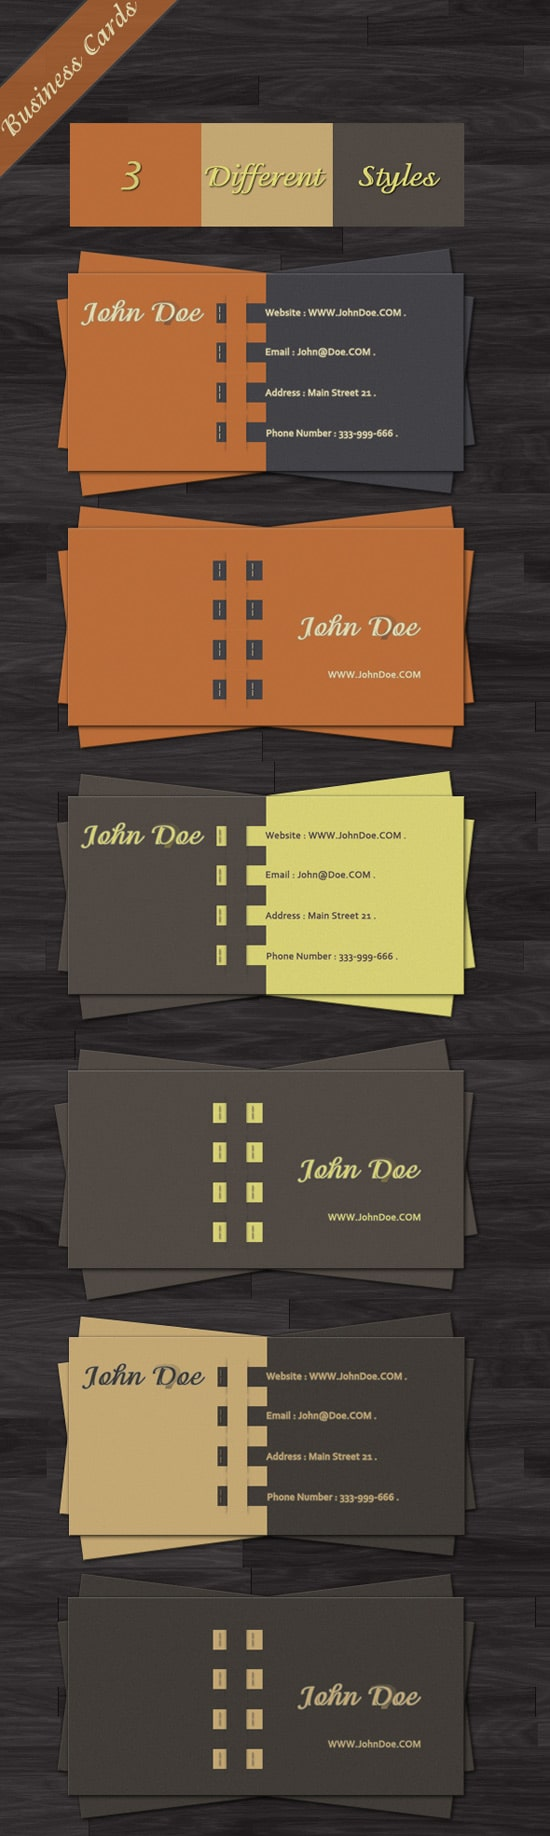 100 free business card templates designrfix business is business free psd vector business card cheaphphosting Gallery